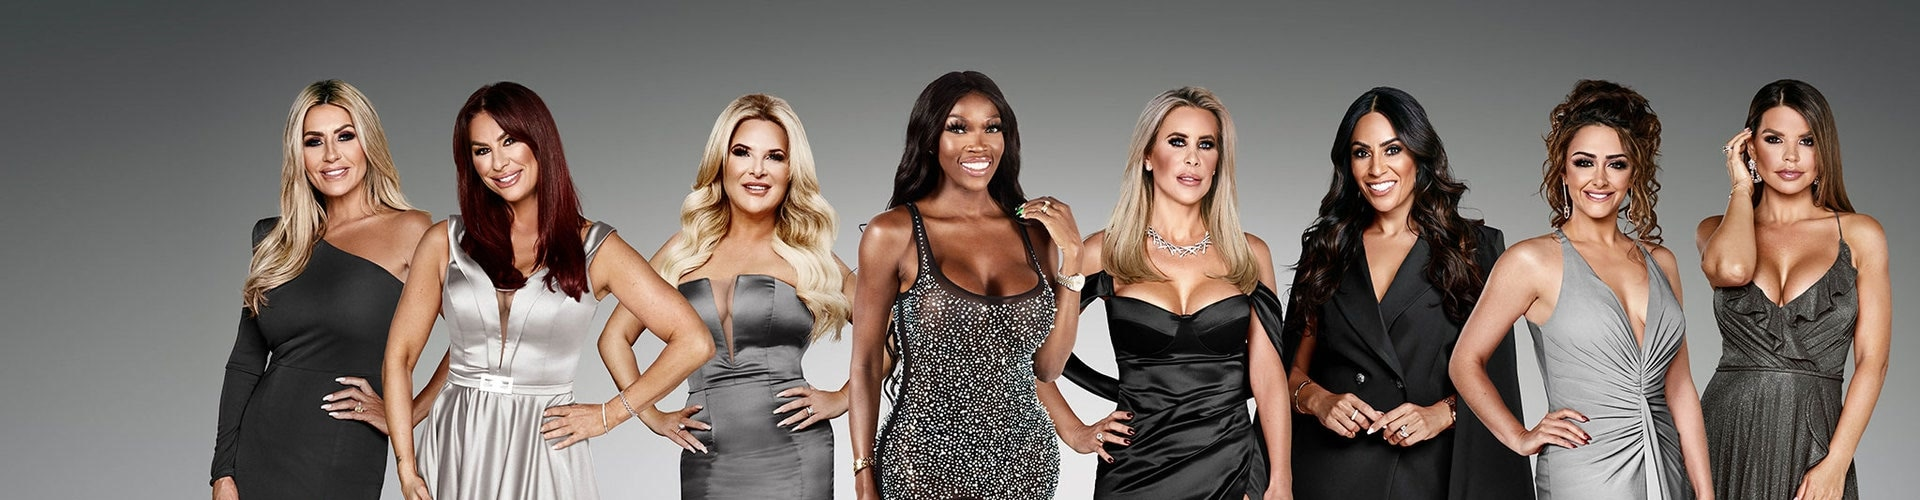 Watch The Real Housewives of Cheshire Online